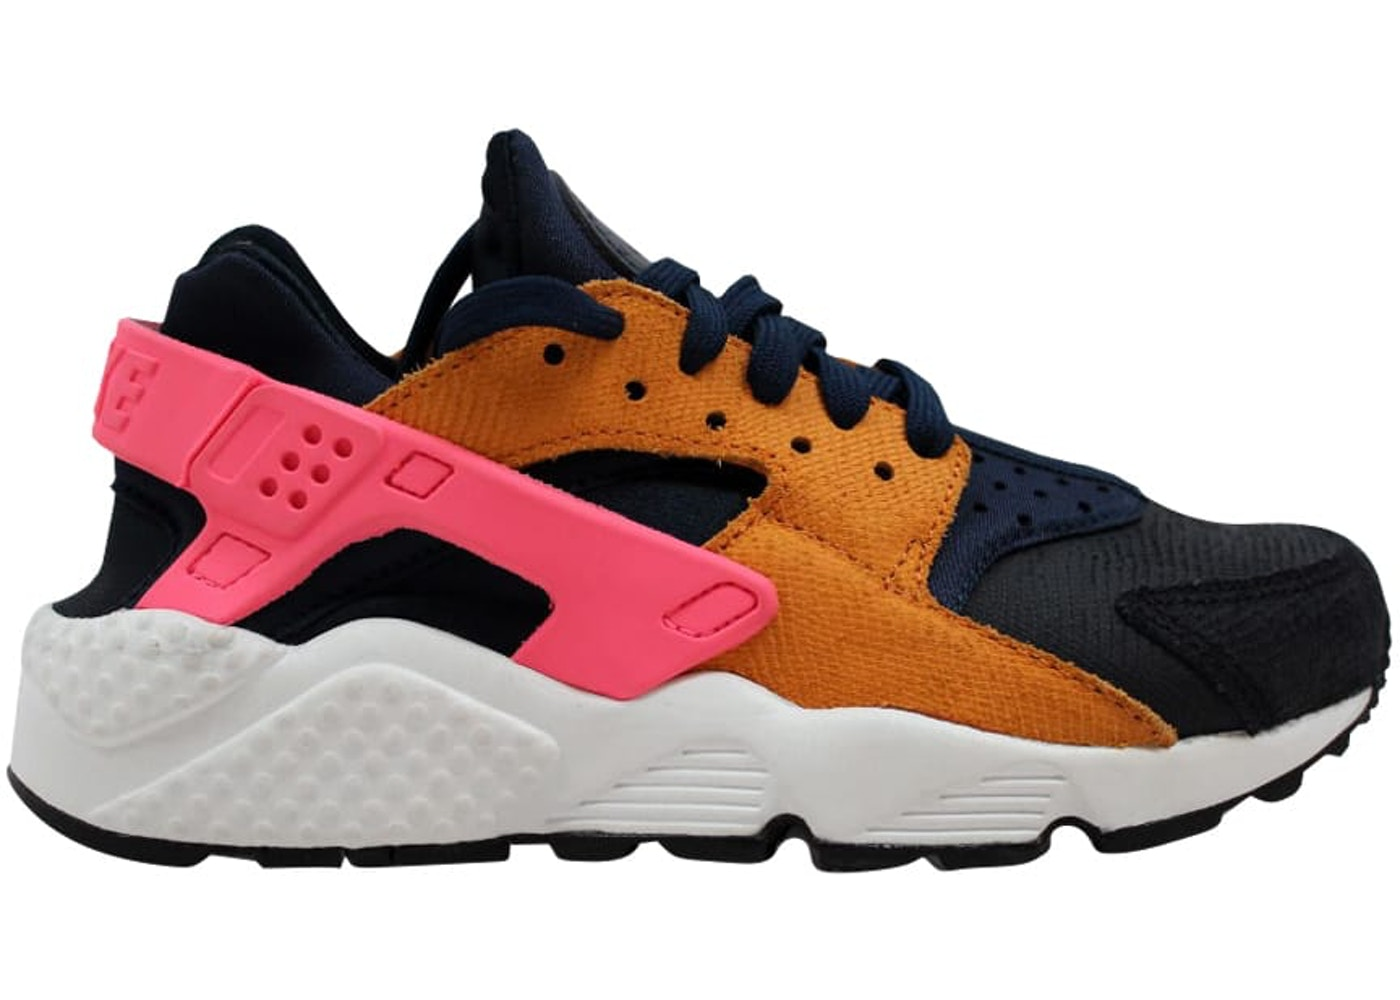 9a9c8273ed98 Sell. or Ask. Size  10W. View All Bids. Nike Air Huarache Run Premium  Obsidian Black-Sunset-Digital Pink ...